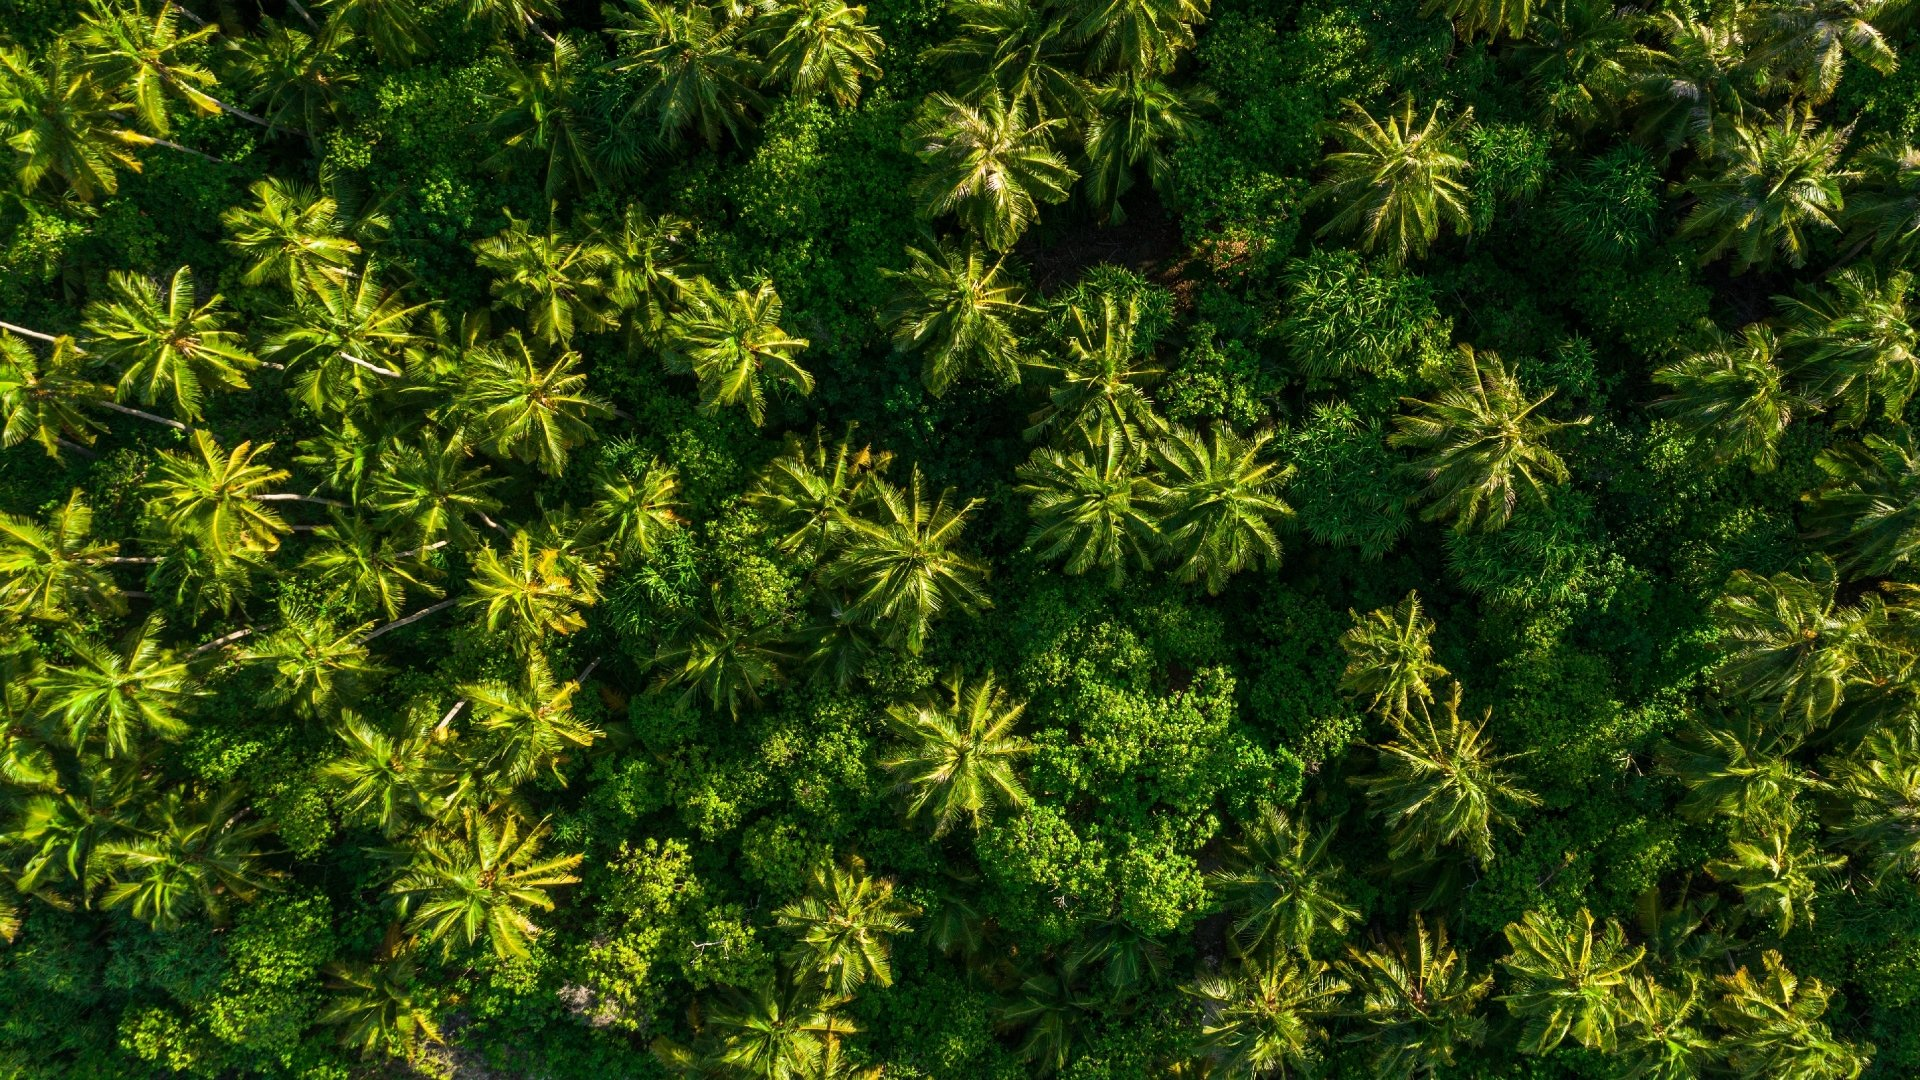 Aerial View of Tropical Forest 4k Ultra HD Wallpaper ...